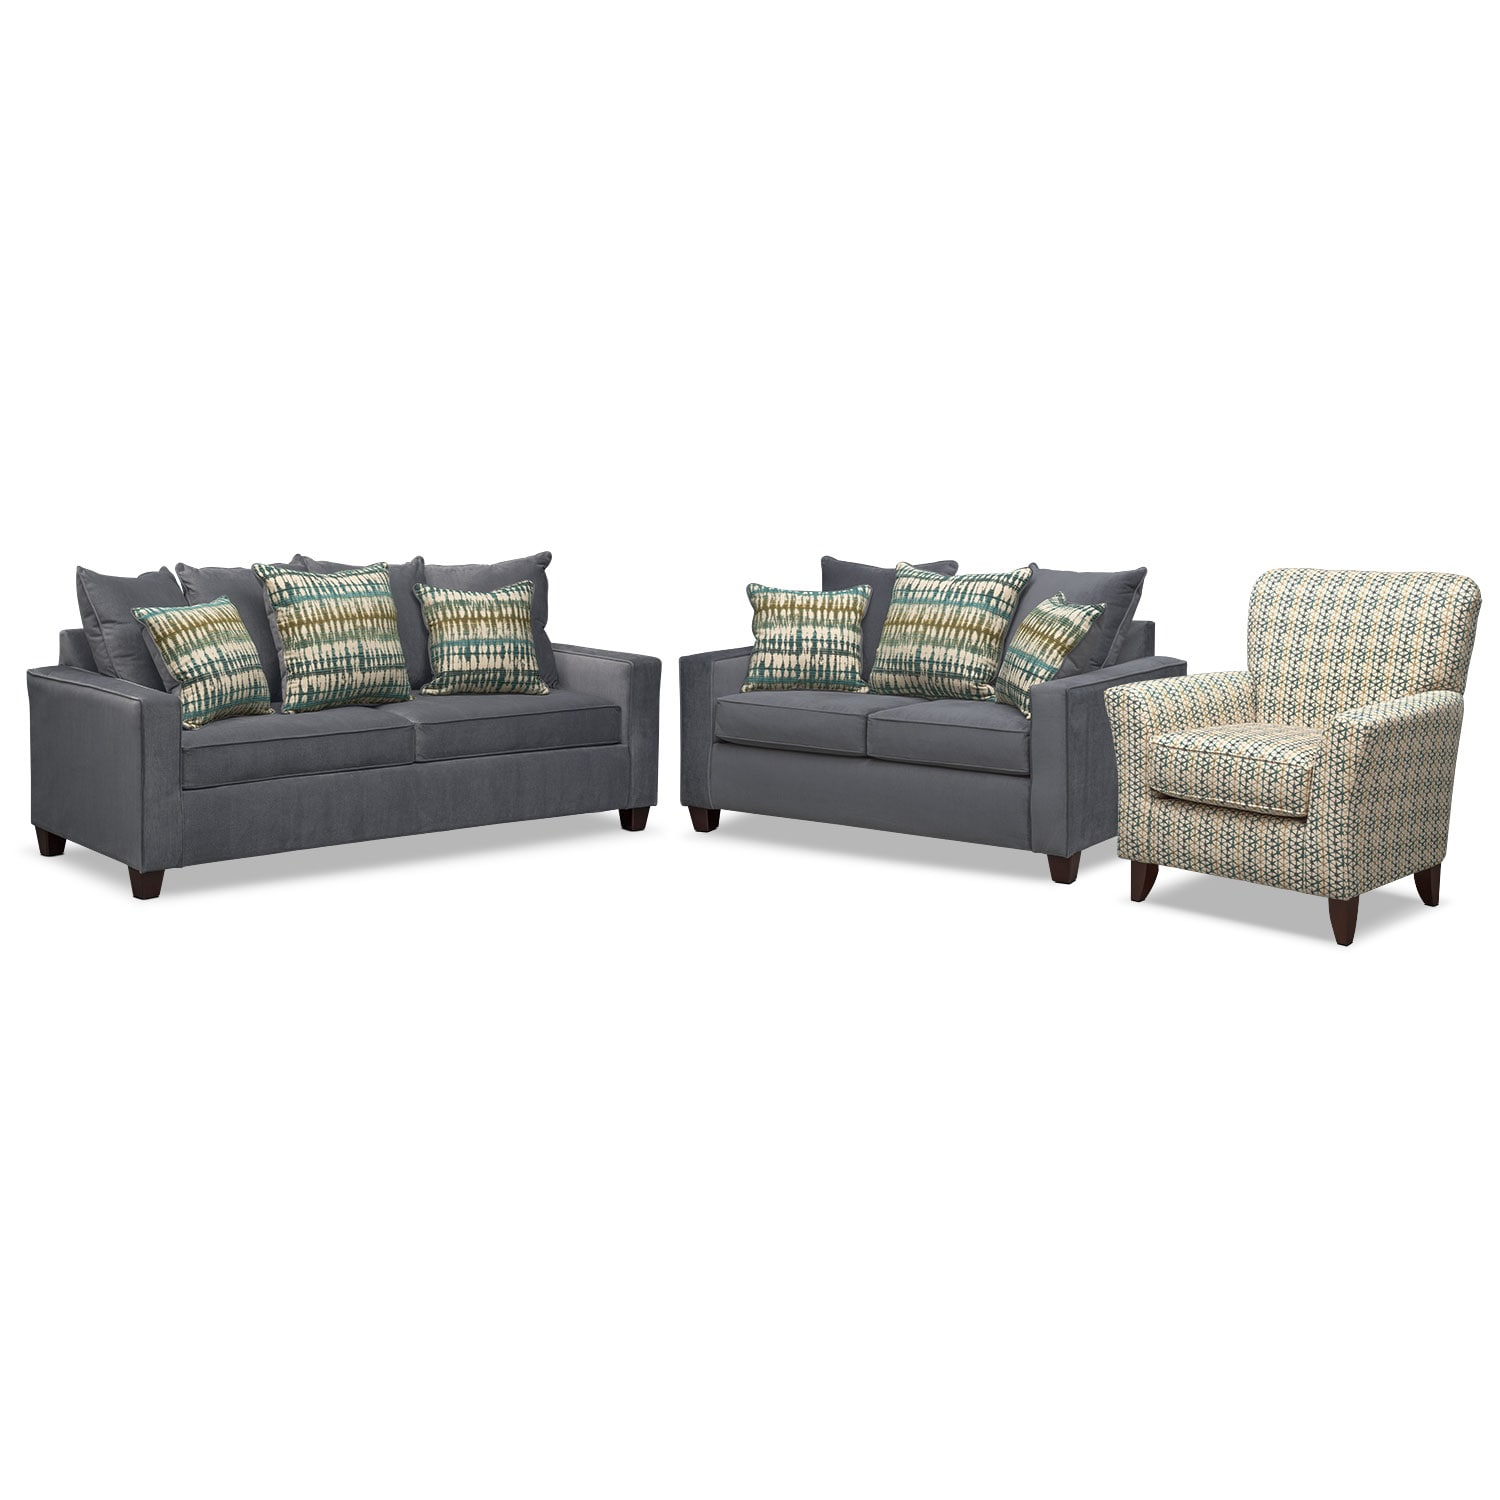 Living Room Furniture - Bryden Sofa, Loveseat and Accent Chair Set - Slate